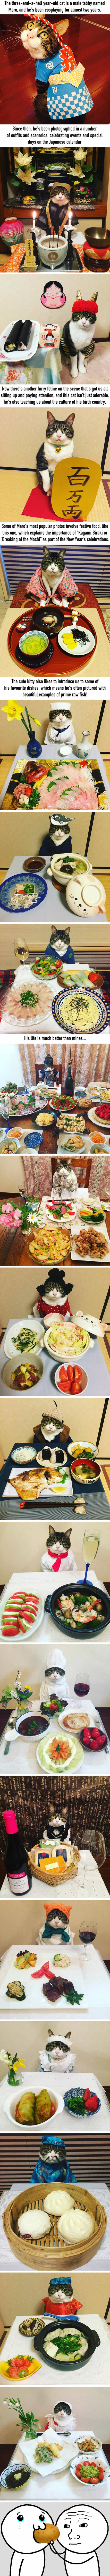 Cosplay-Feline Is Here To Teach You About Japanese Cuisine And Culture